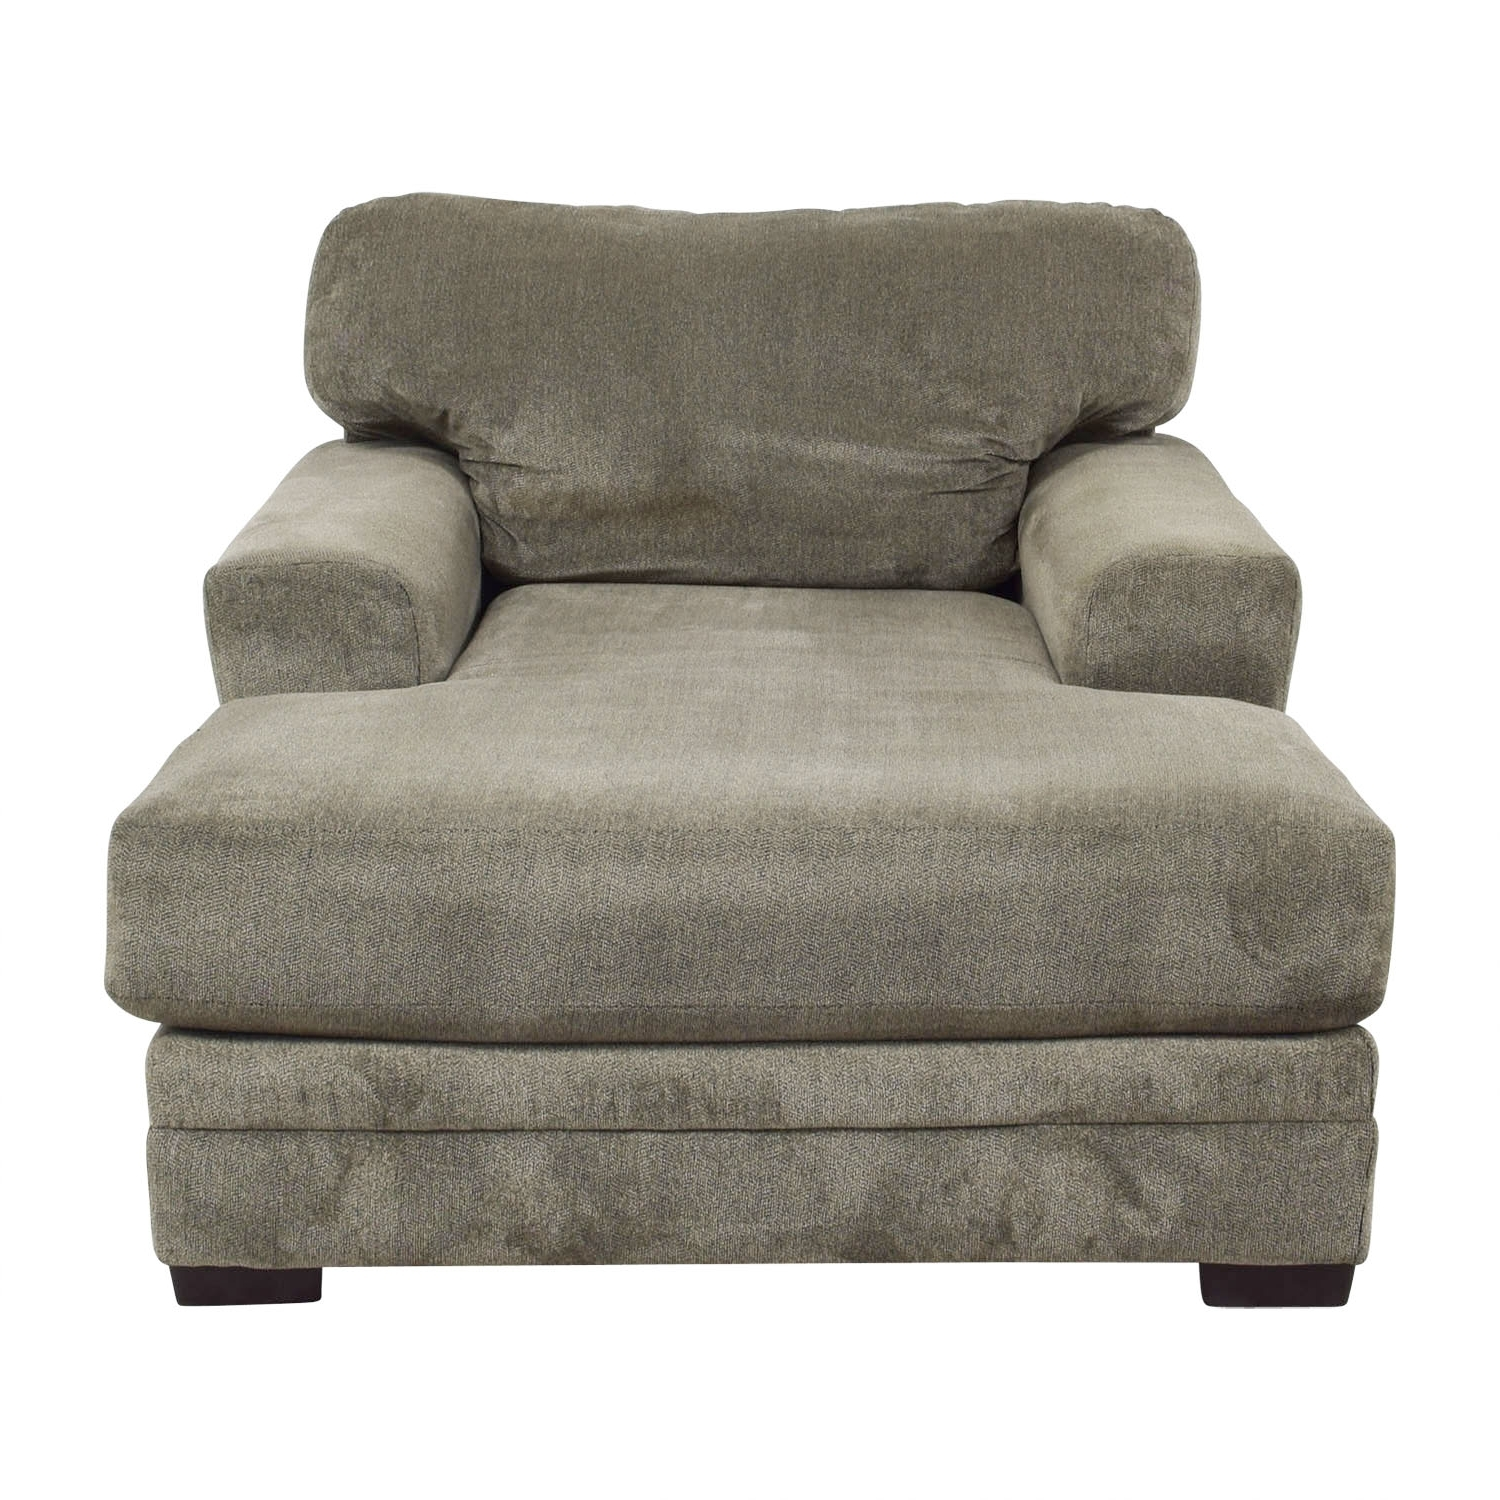 [%81% Off – Bob's Furniture Bob's Furniture Grey Chaise Lounge / Sofas Within Current Gray Chaise Lounges|Gray Chaise Lounges Inside Popular 81% Off – Bob's Furniture Bob's Furniture Grey Chaise Lounge / Sofas|Widely Used Gray Chaise Lounges Pertaining To 81% Off – Bob's Furniture Bob's Furniture Grey Chaise Lounge / Sofas|Trendy 81% Off – Bob's Furniture Bob's Furniture Grey Chaise Lounge / Sofas For Gray Chaise Lounges%] (View 2 of 15)